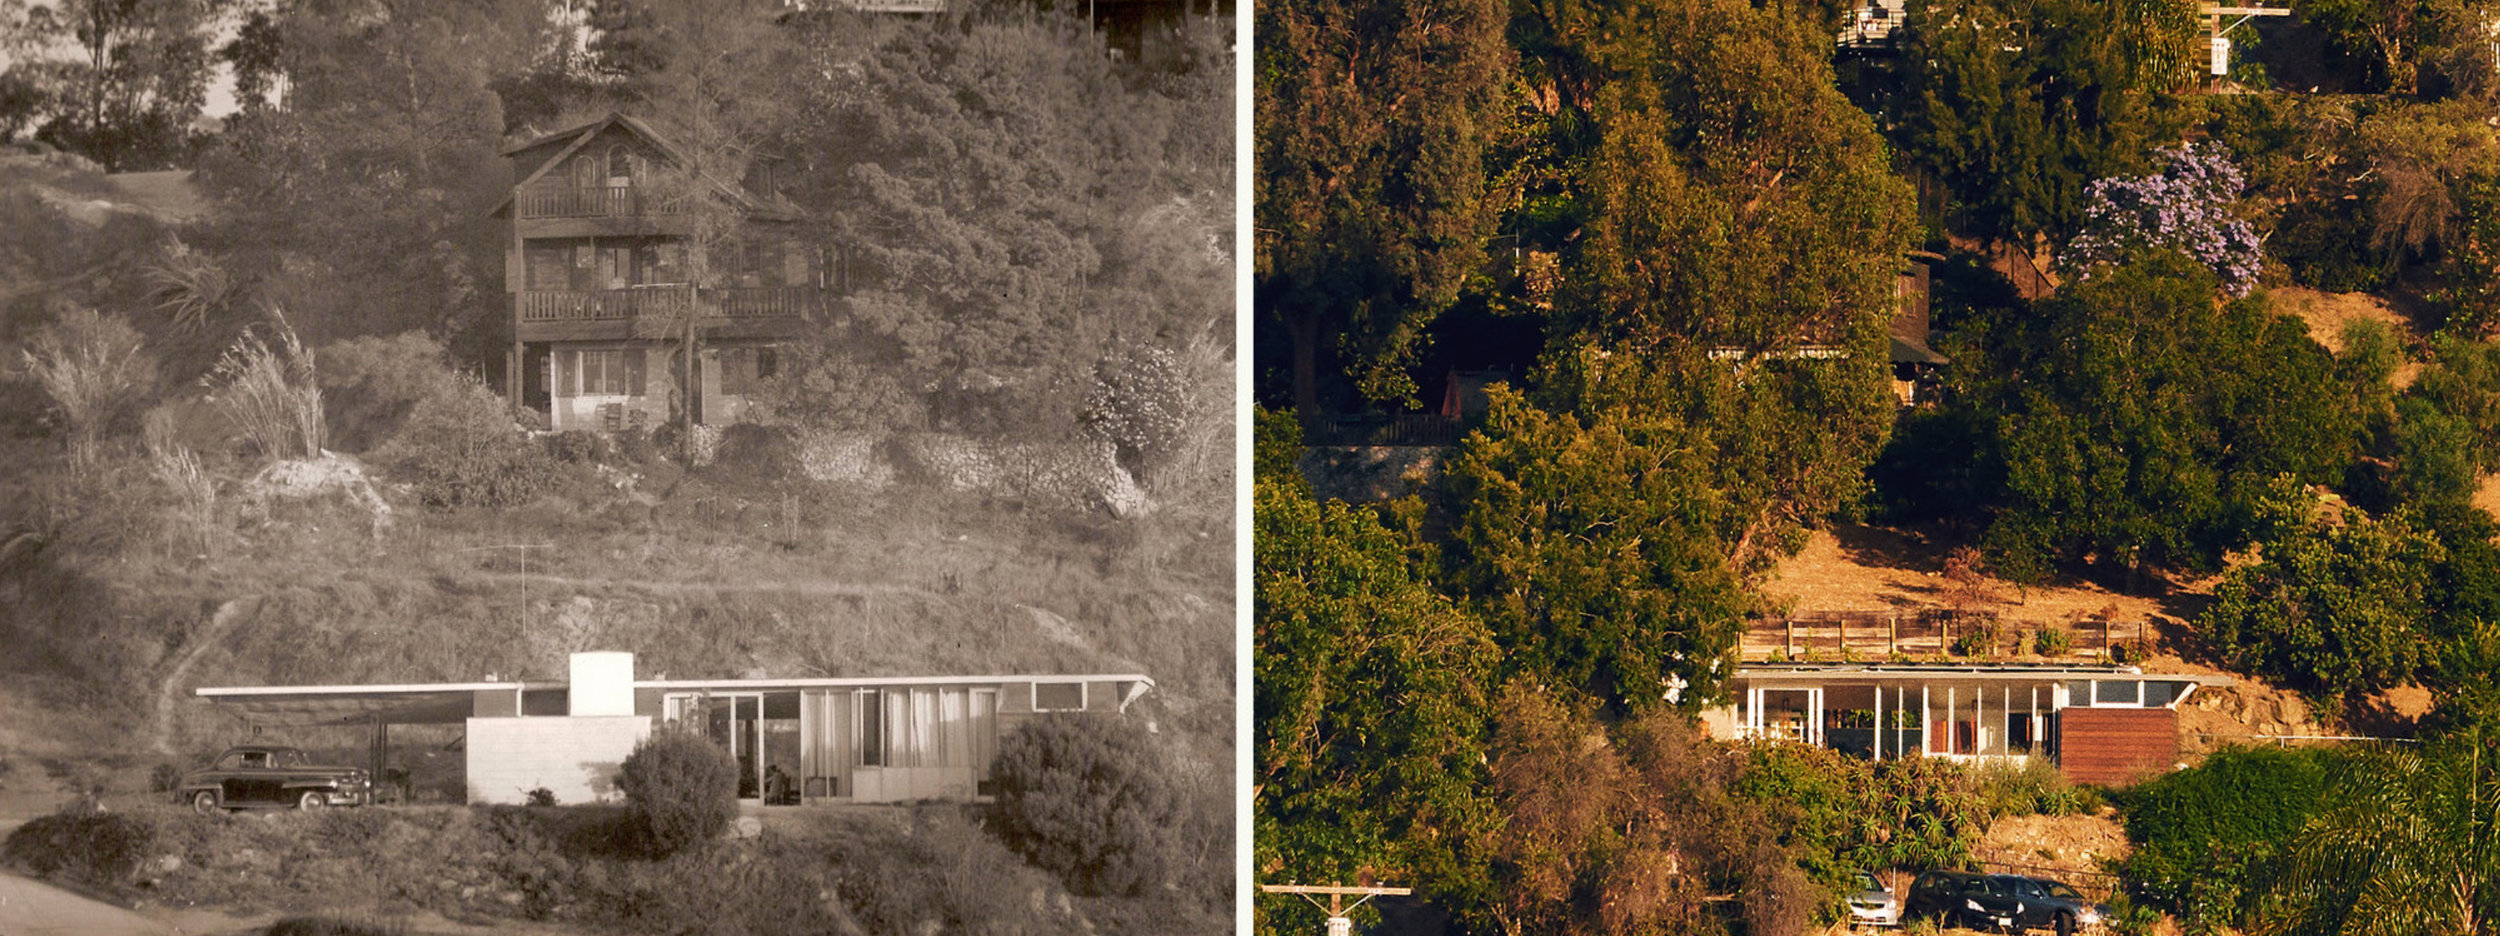 Lautner House in the 1940s (photo by the owners) and today (photo by Jake Michaels)